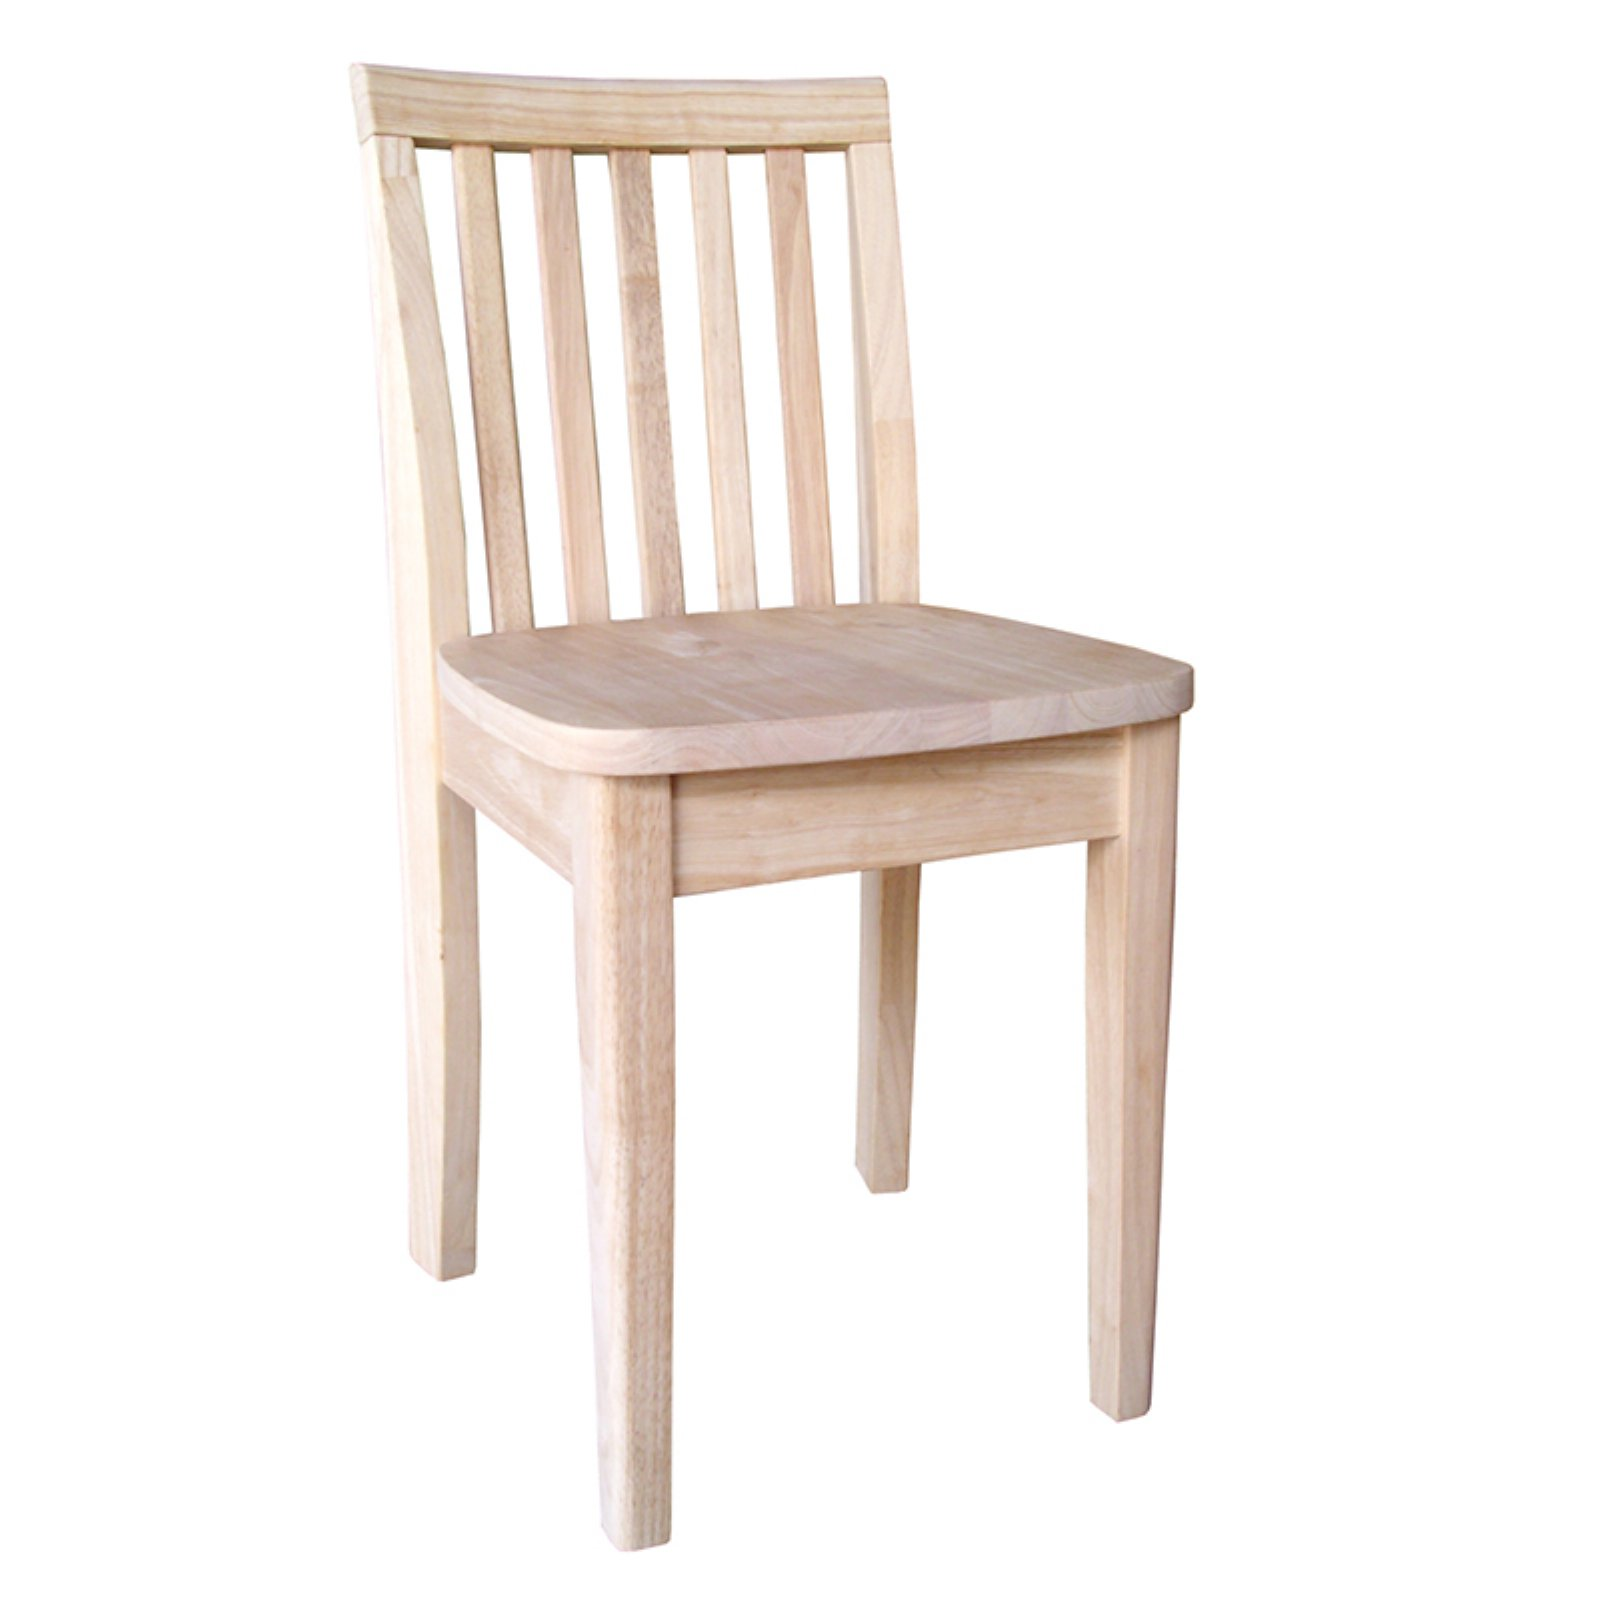 International Concepts Juvenile Slat Back Chair, Set of 2, Unfinished by Generic